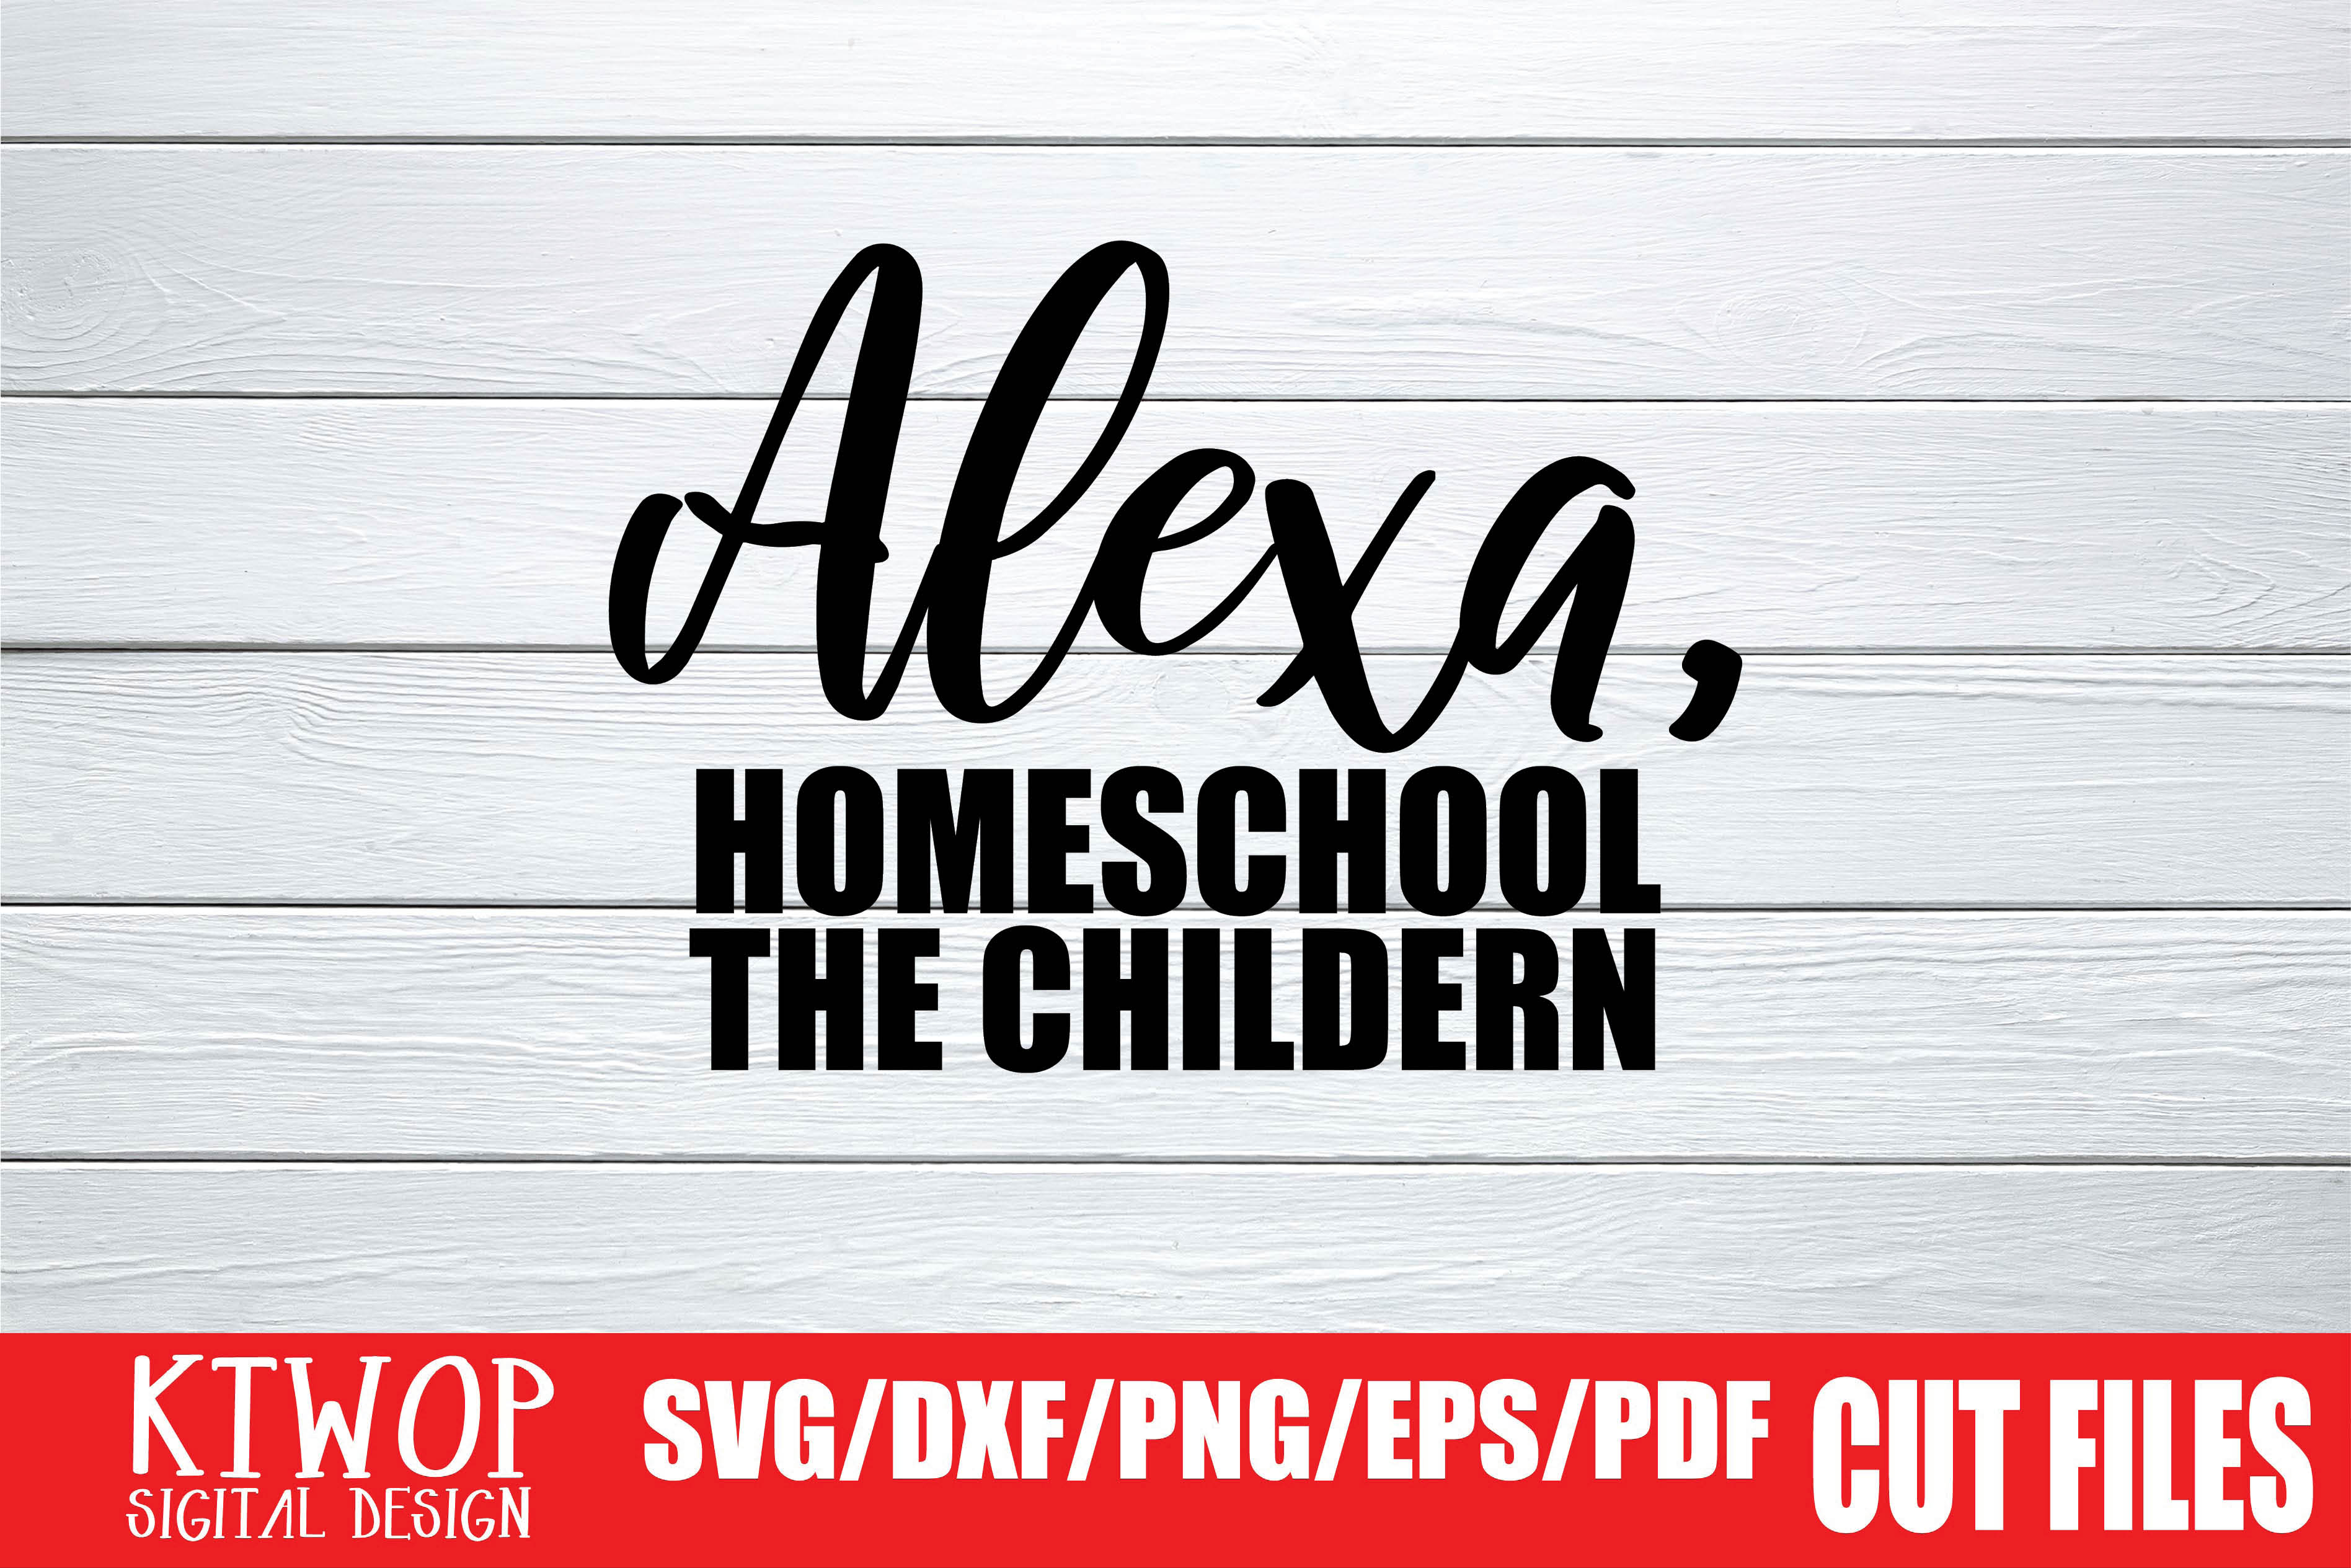 Download Free Alexa Homeschool The Children Graphic By Ktwop Creative Fabrica for Cricut Explore, Silhouette and other cutting machines.